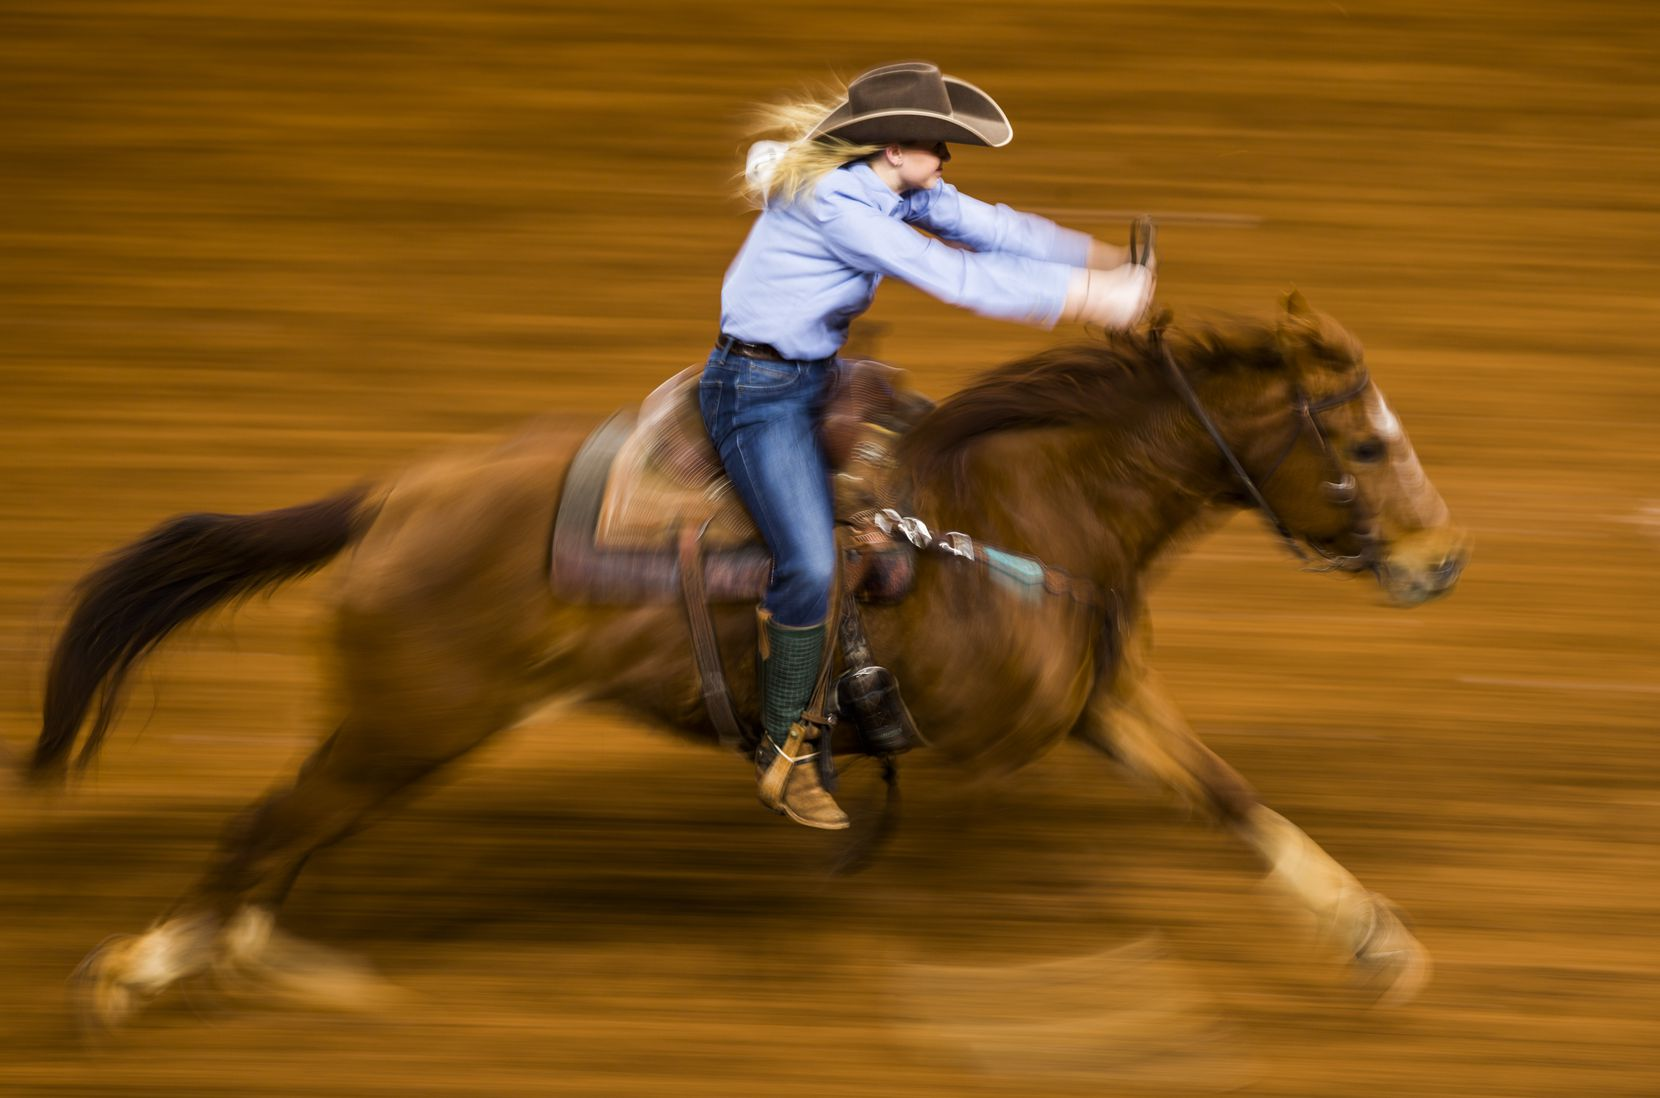 """A member of the RA Brown Ranch team competes in Ranch Girl's Barrel Race during a """"Best of the West"""" ranch rodeo event on Saturday, January 18, 2020 at Dickies Arena in Fort Worth. The """"Best of the West"""" Ranch Rodeo event is part of the 2020 Fort Worth Stock Show & Rodeo which is being held at Dickies Arena this year for the first time."""